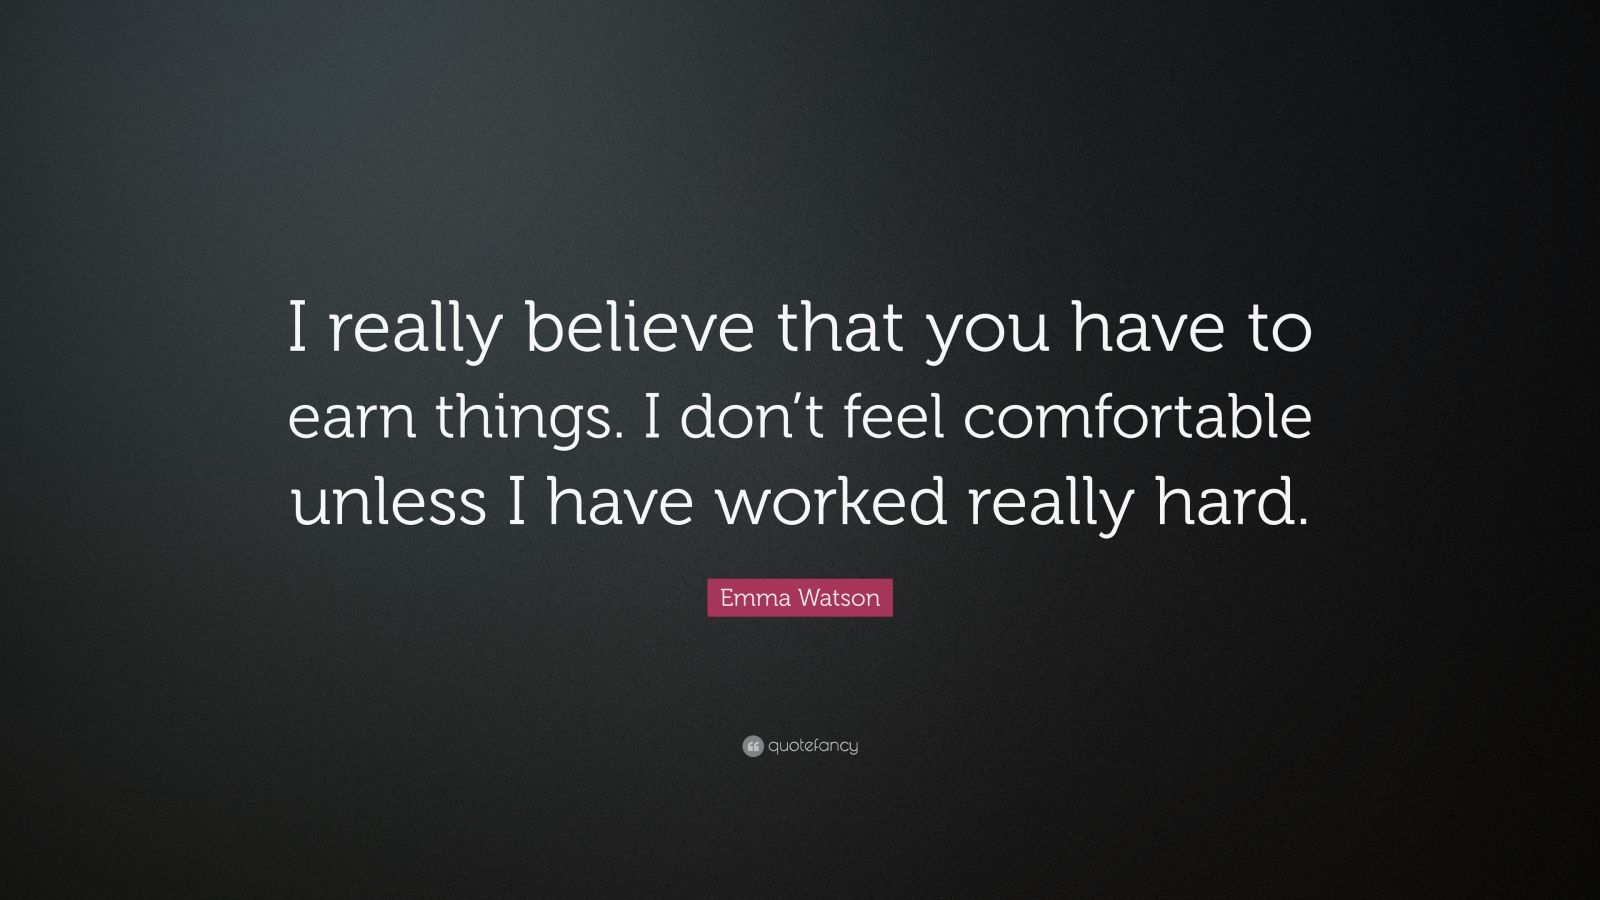 """Emma Watson Quote: """"I really believe that you have to earn things. I don't feel comfortable unless I have worked really hard."""""""